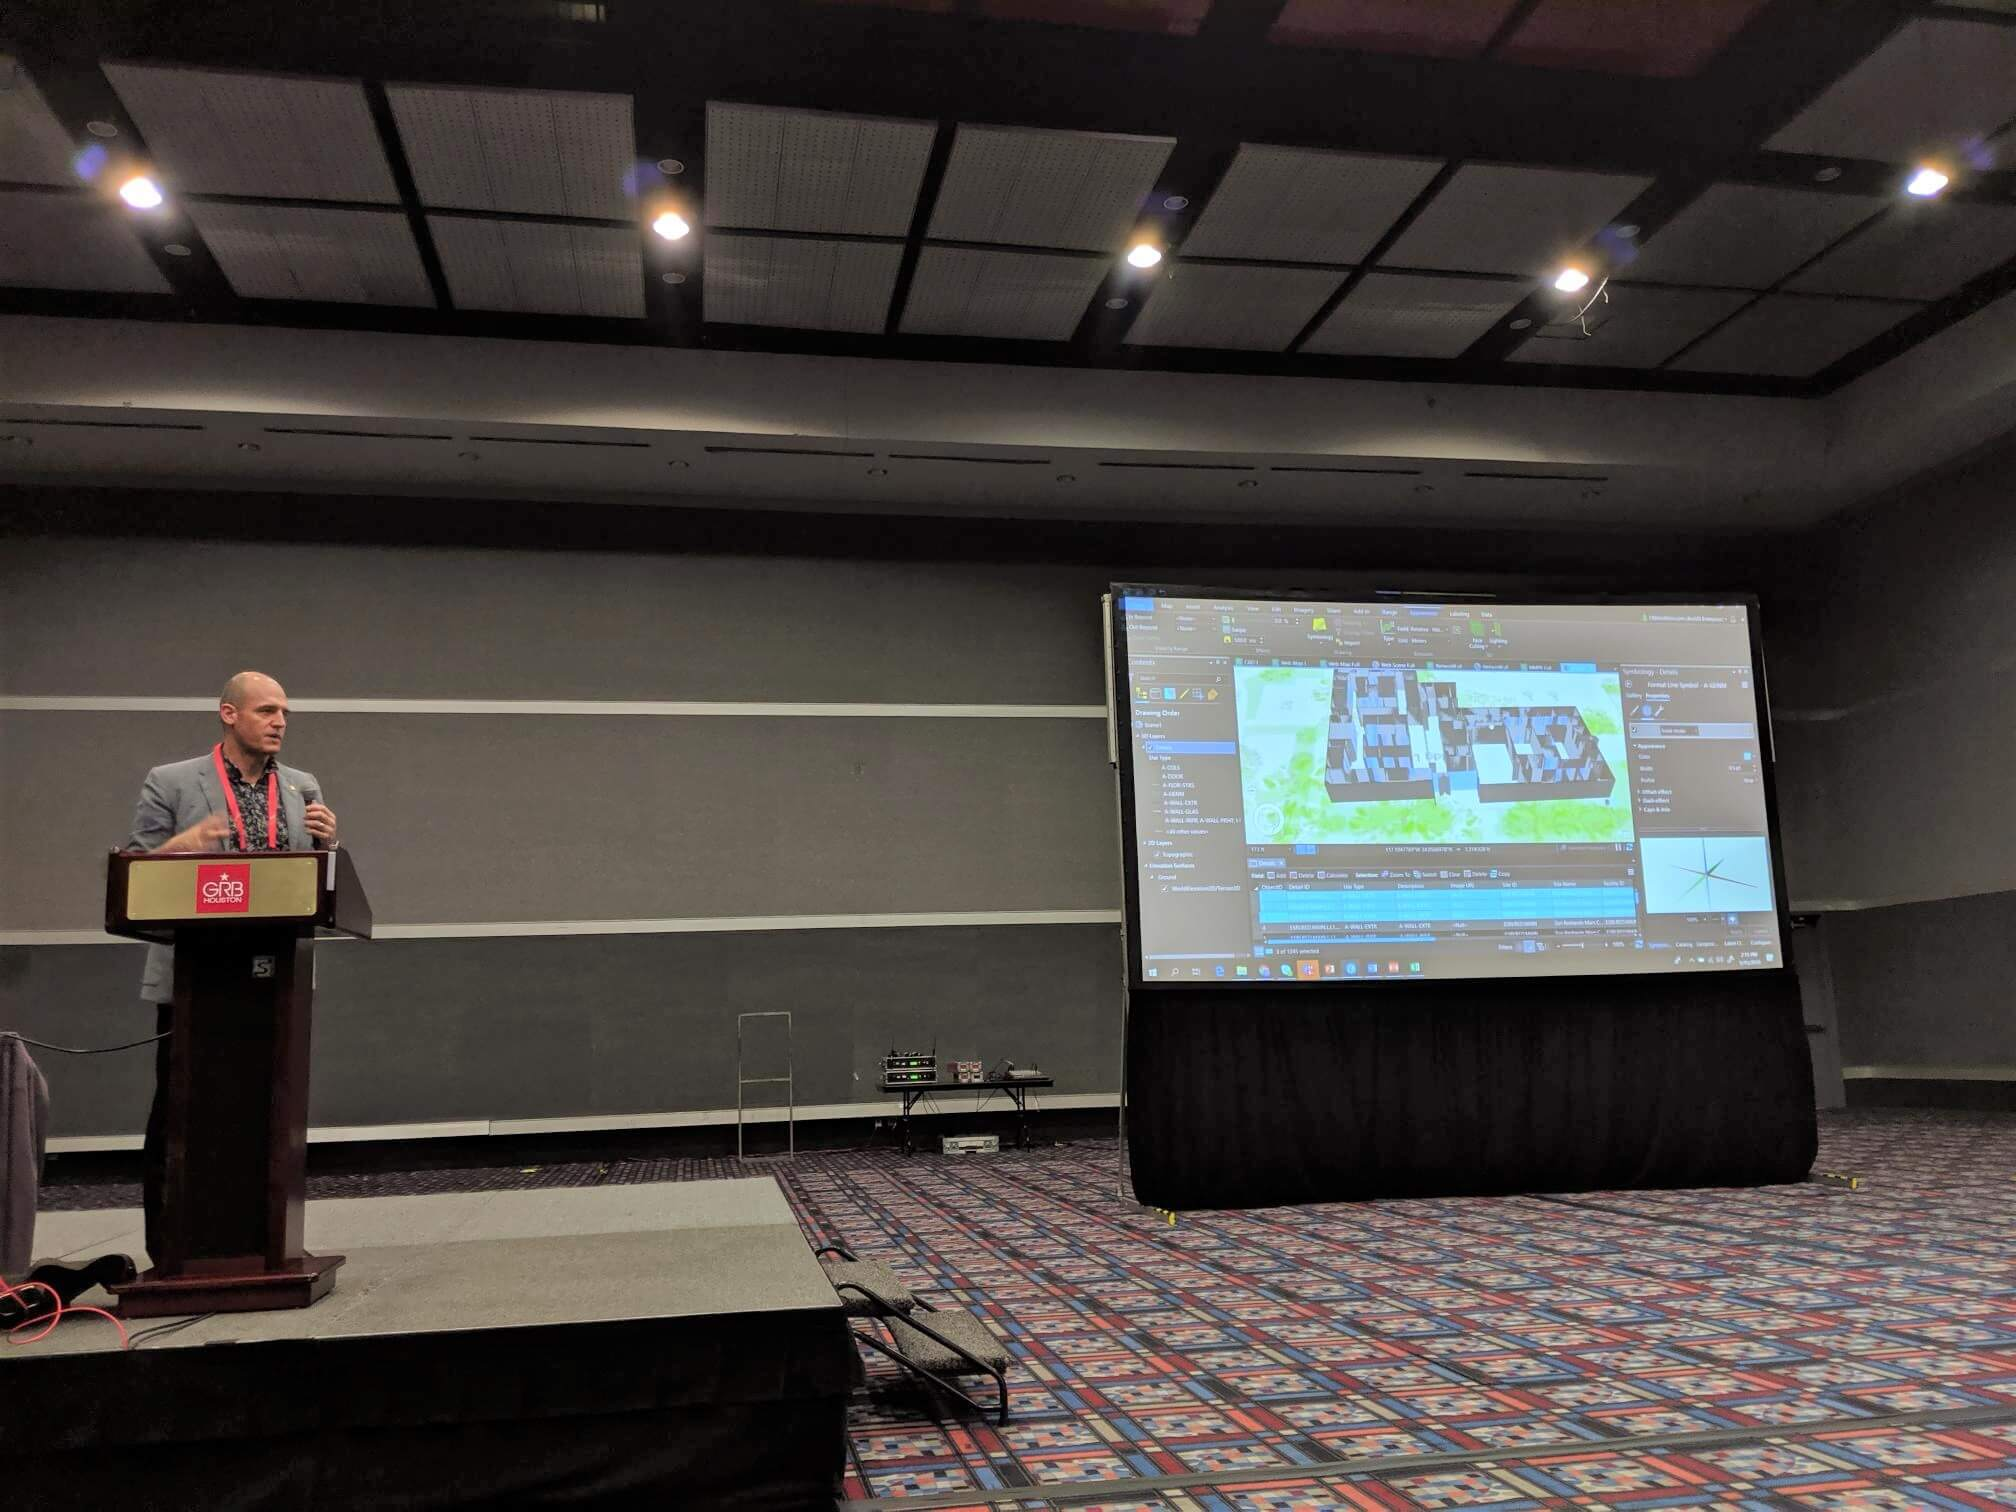 Pat Wallis presenting ArcGIS Indoors during his workshop on how indoor mapping and positioning solutions help optimize workplace operations.